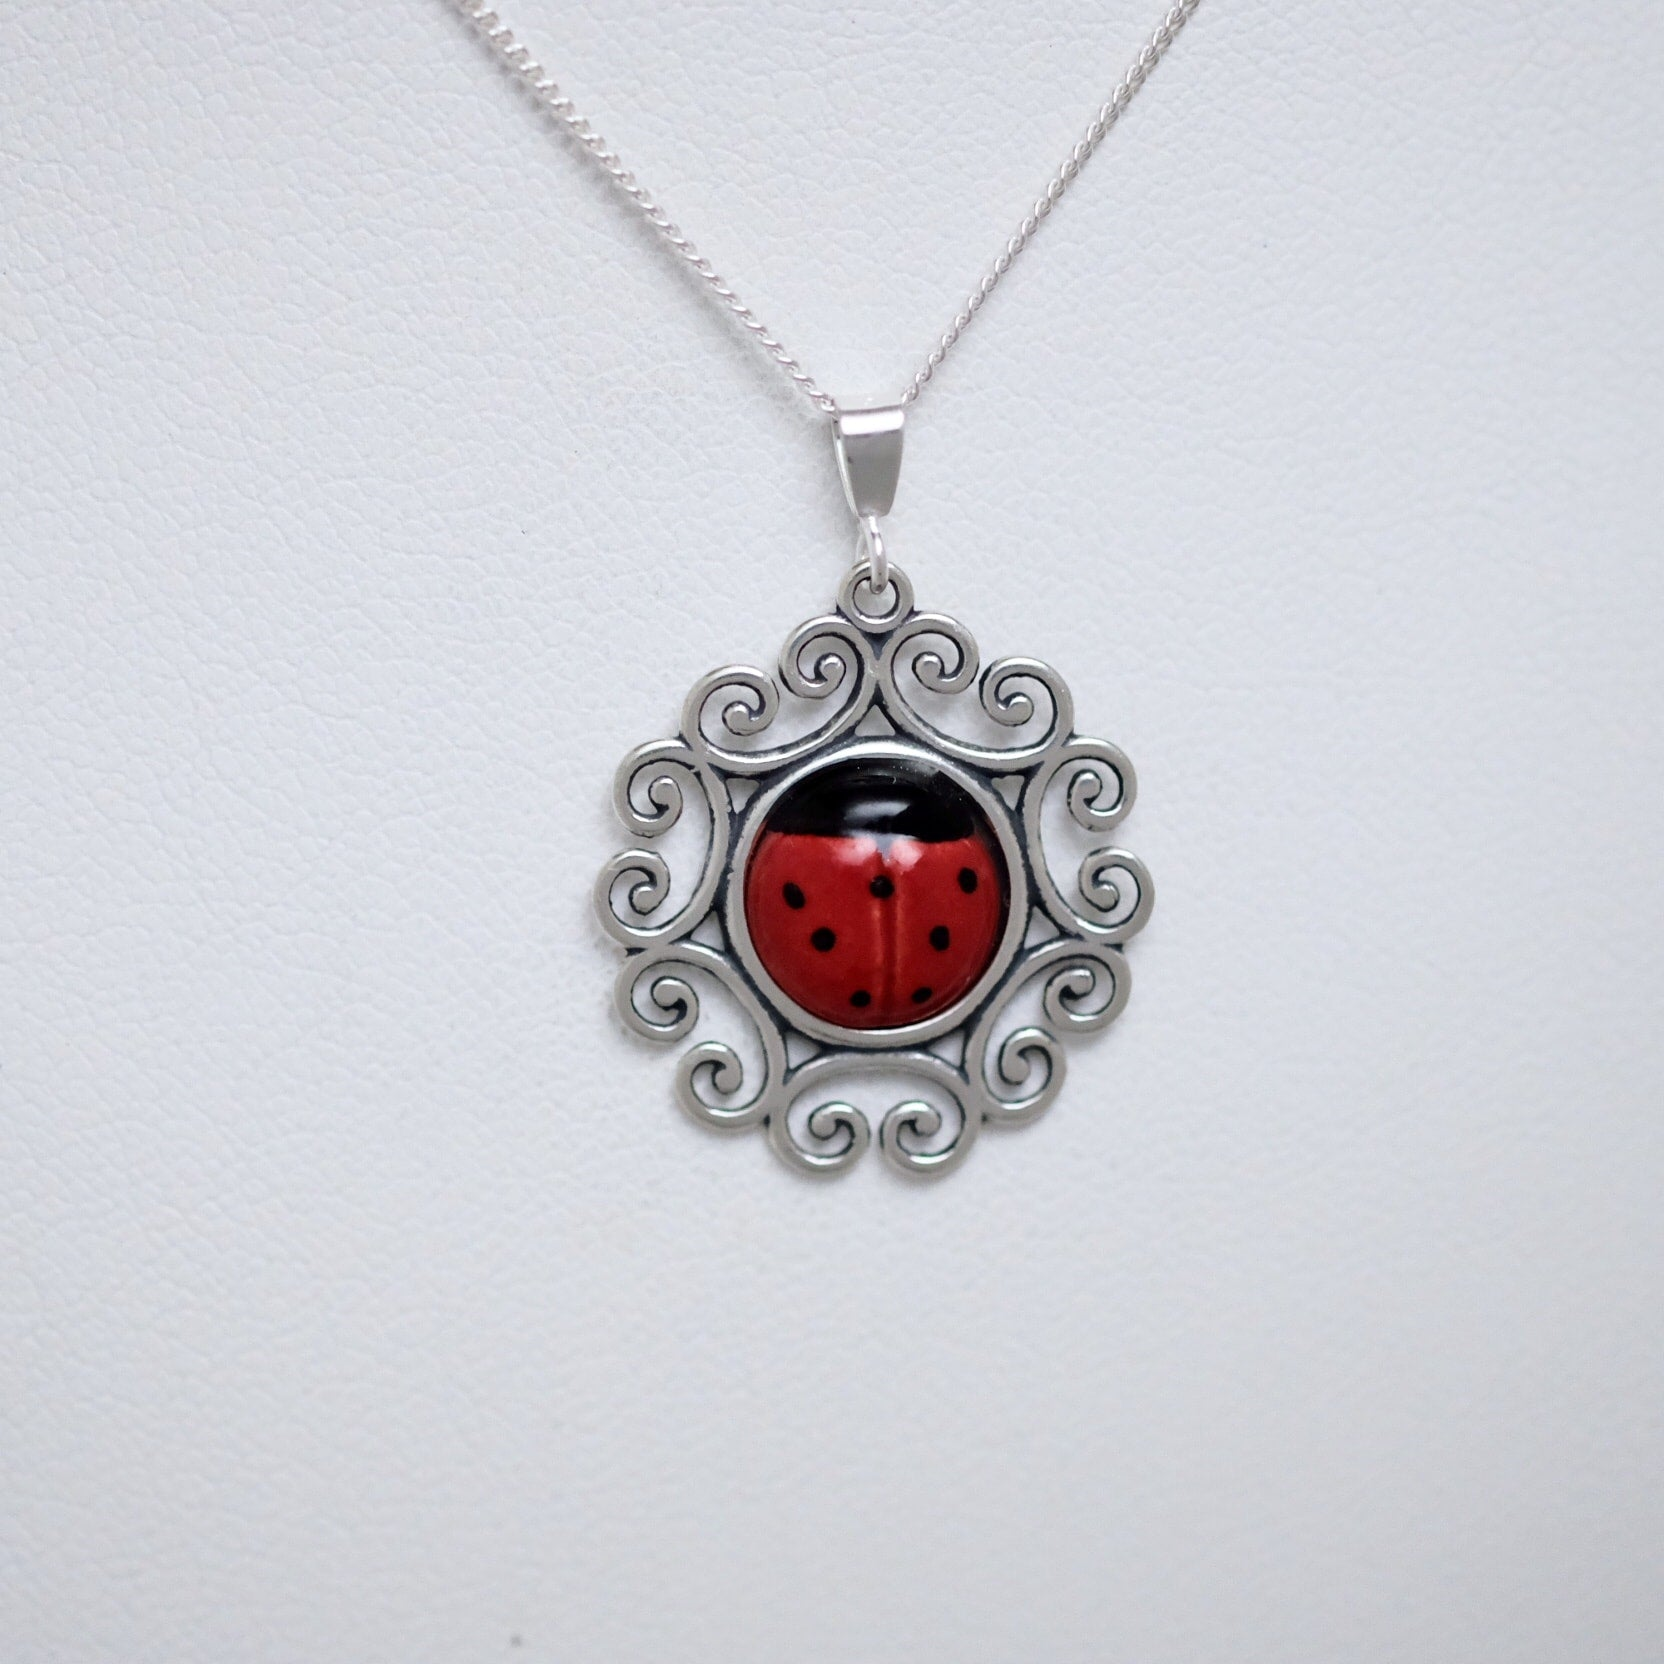 Porcelain ladybug with floral silver base (large pendant) by Joseph Chiang